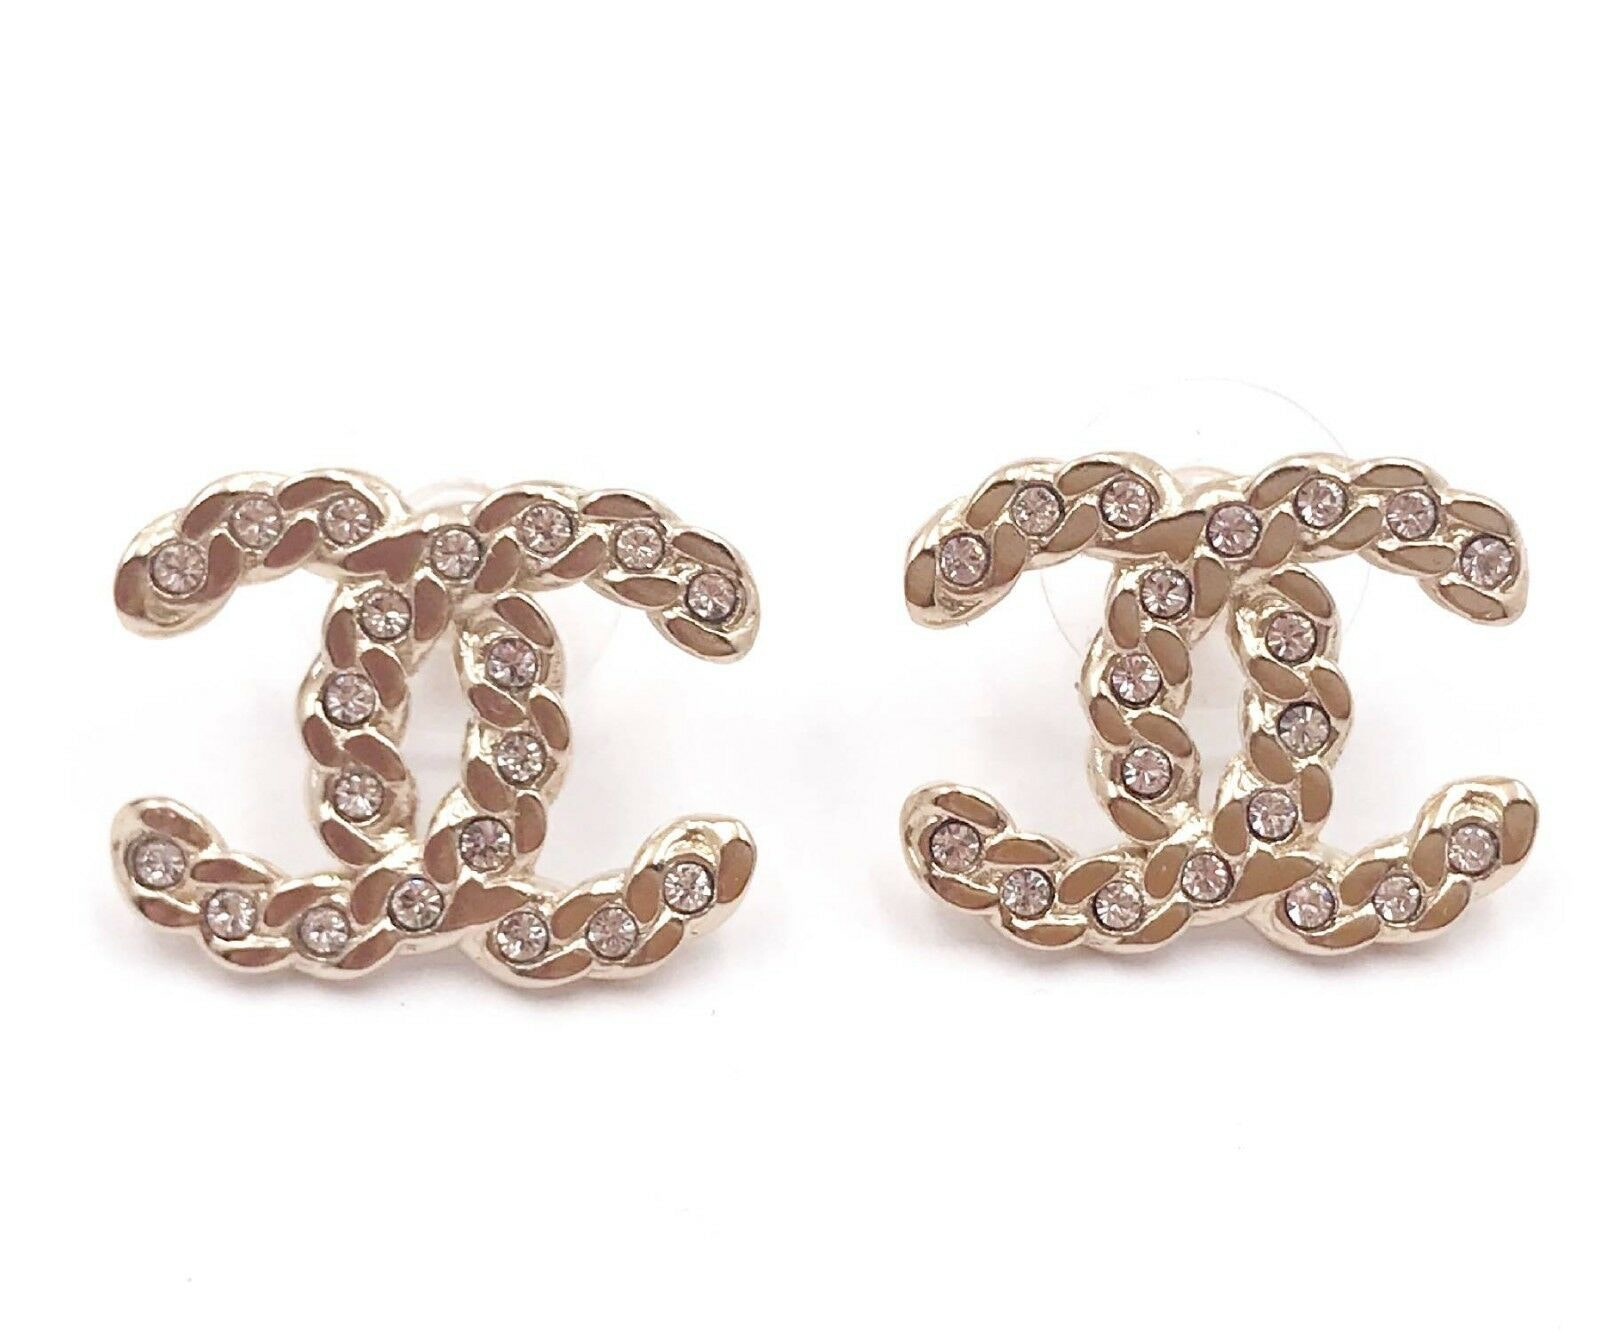 Chanel Classic CC Turnlock Crystal Earrings Gold/Silver